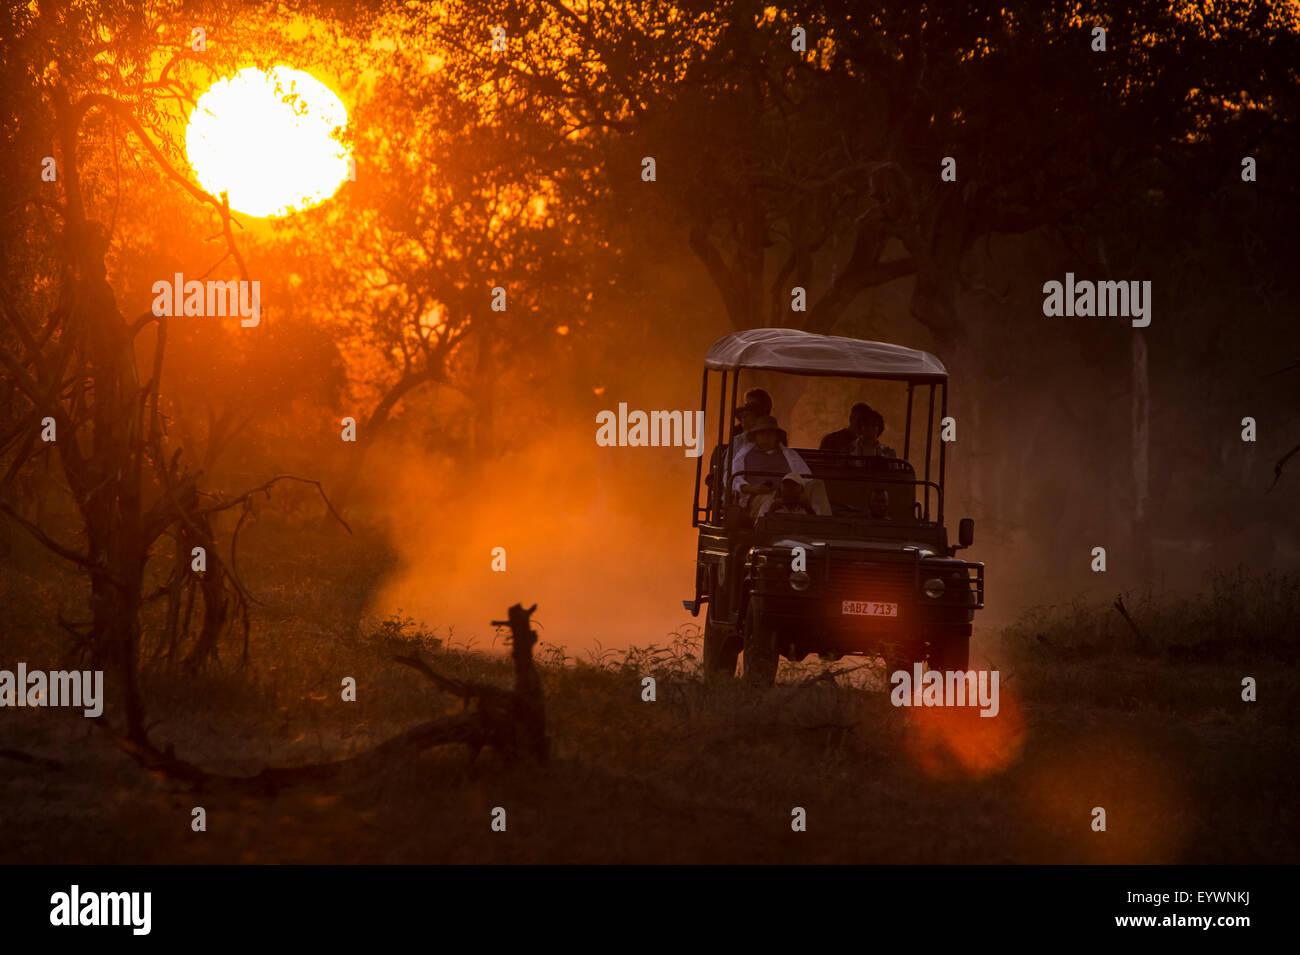 Jeep in backlight at sunset, South Luangwa National Park, Zambia, Africa - Stock Image